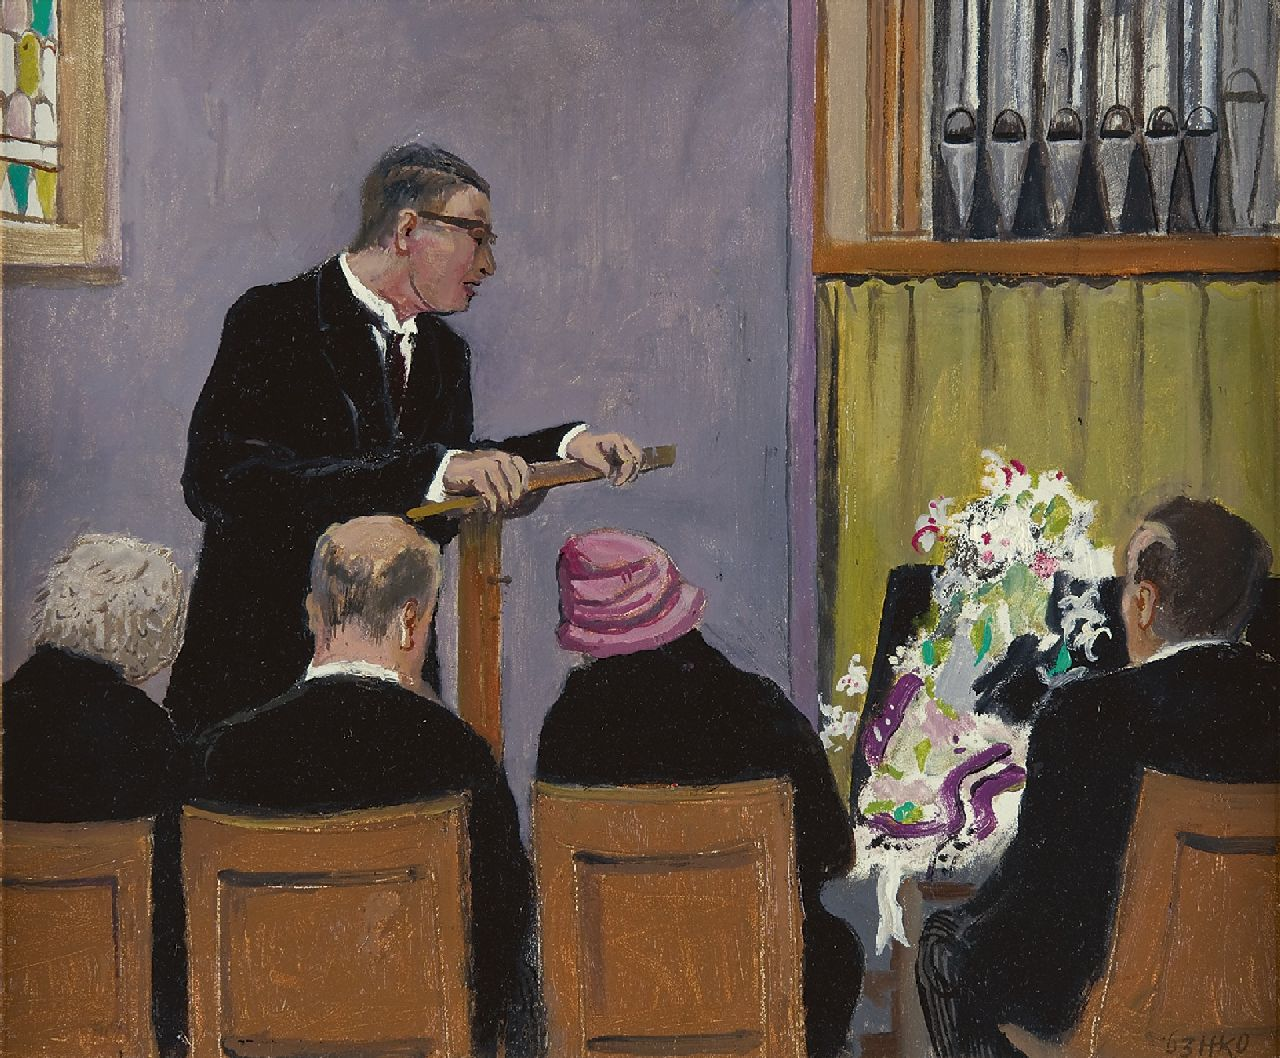 Kamerlingh Onnes H.H.  | 'Harm' Henrick Kamerlingh Onnes | Paintings offered for sale | The memorial service, oil on board 34.1 x 40.8 cm, signed l.r. with monogram and dated '63